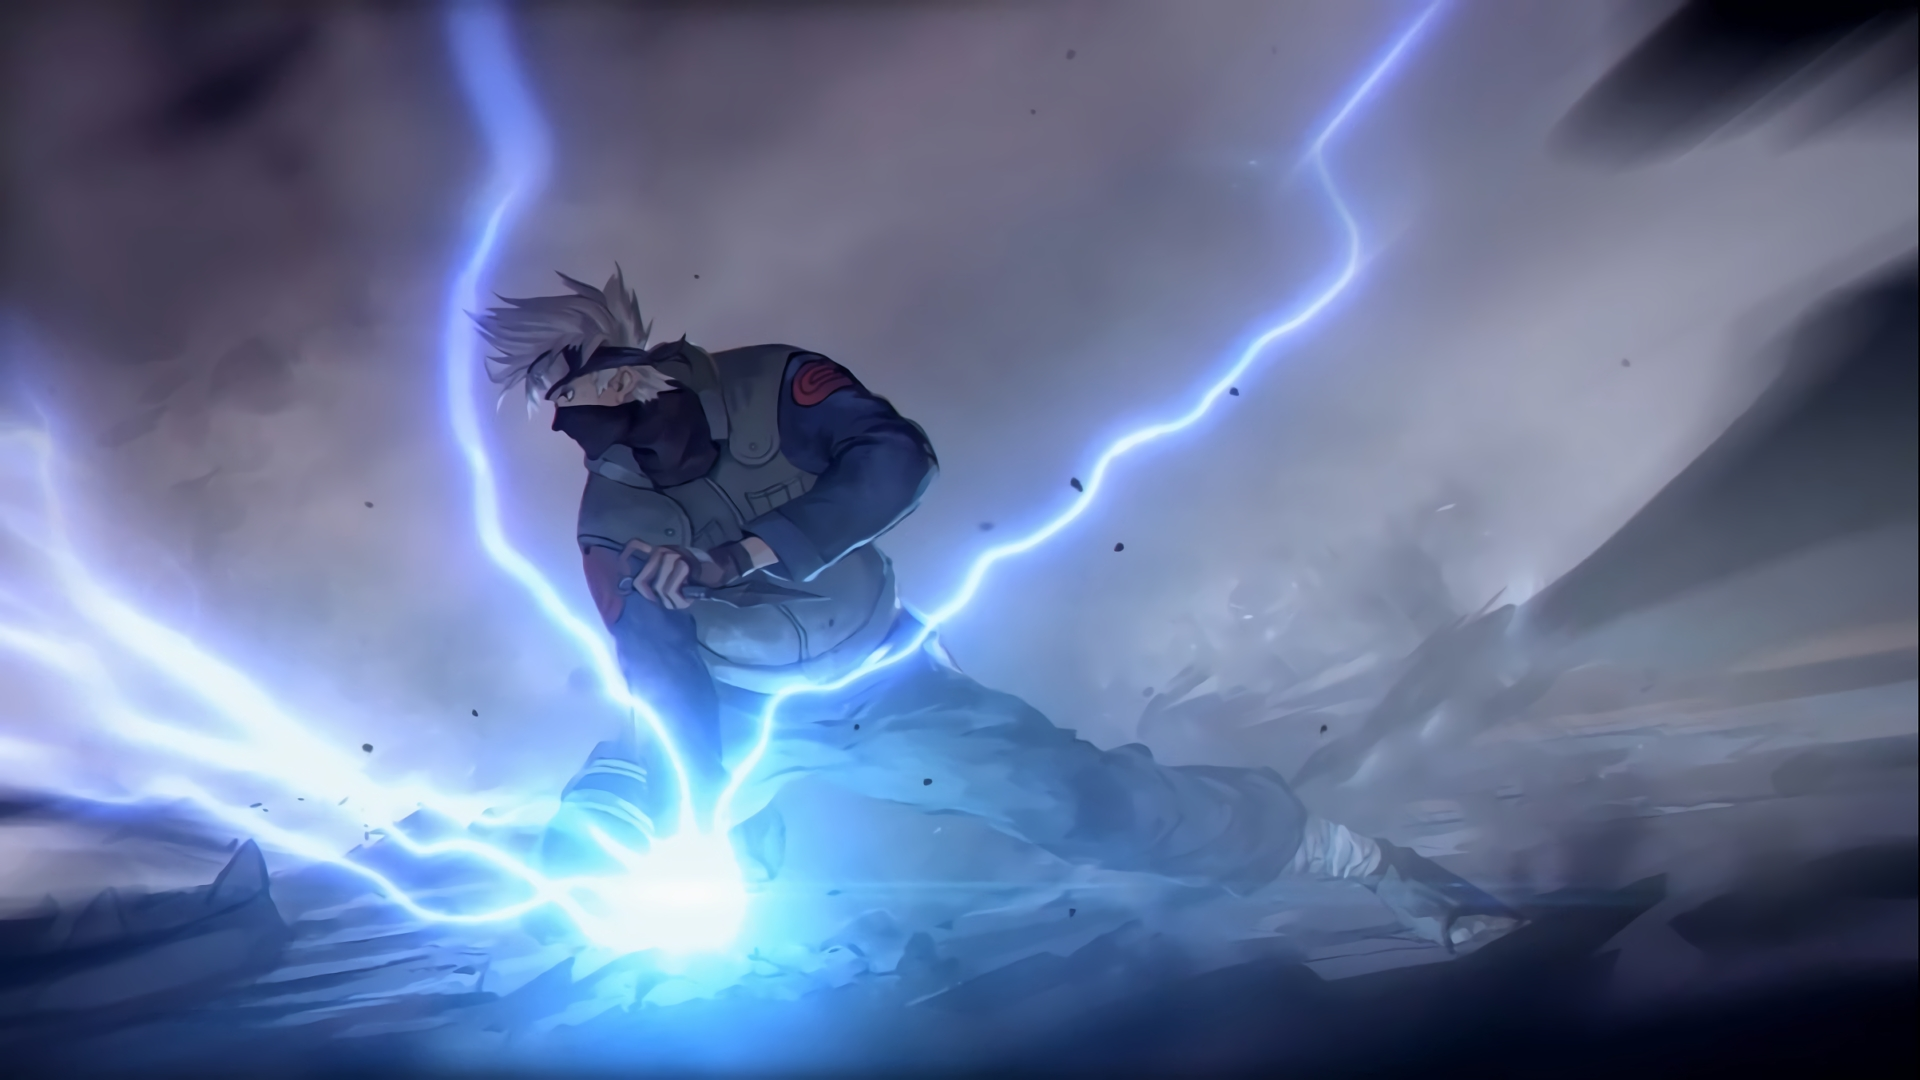 Kakashi Hatake Anime Wallpaper Full Hd Id 3613